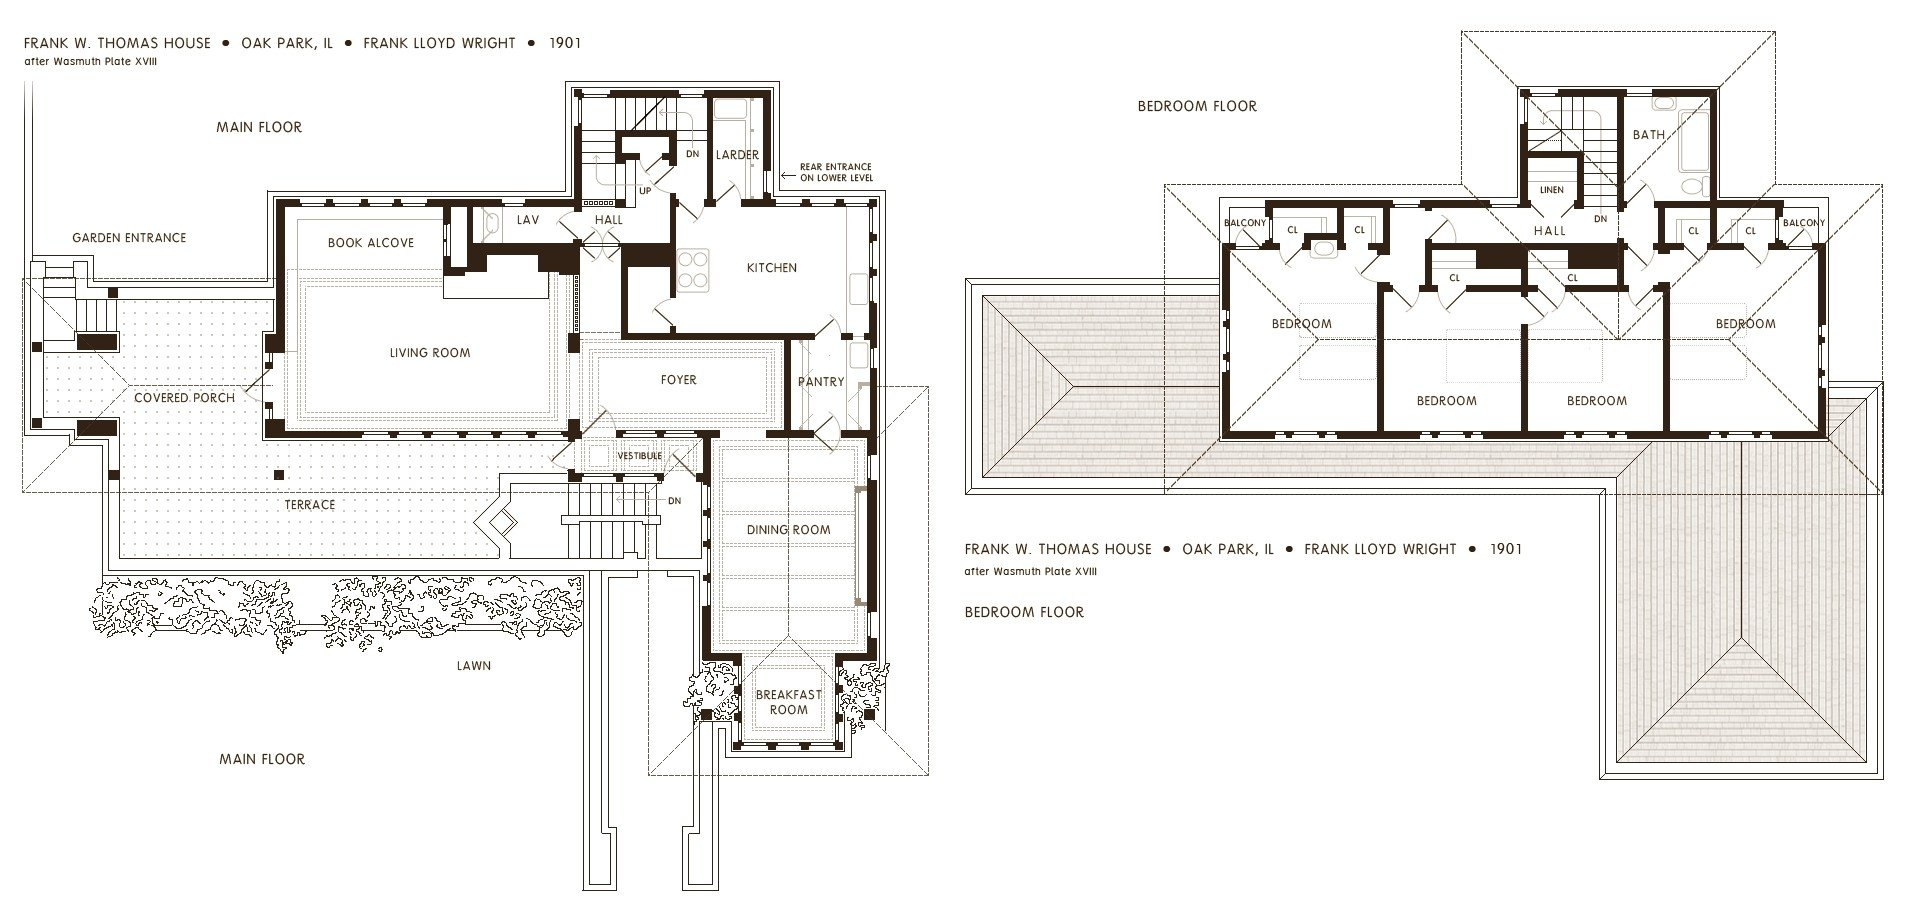 Floor plans of the Frank Thomas House